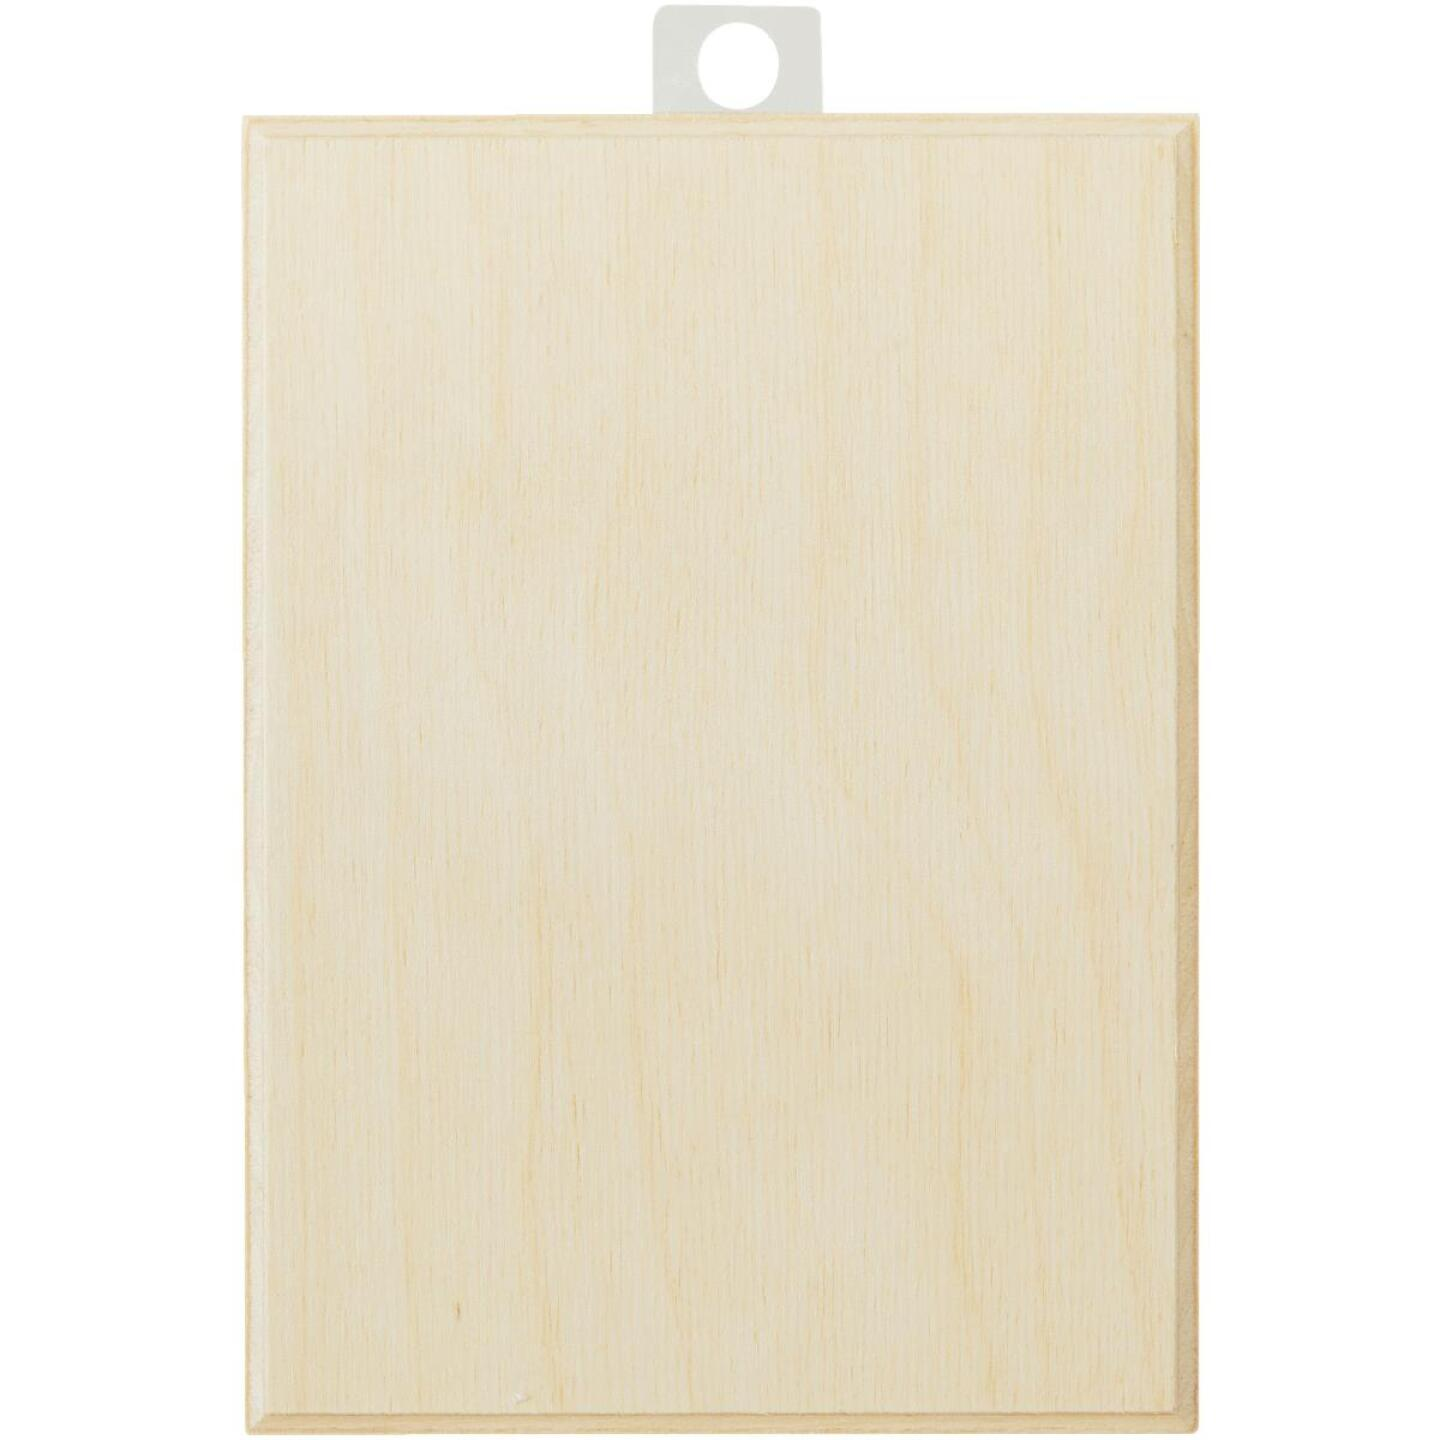 Walnut Hollow 5.25 In. x 7.25 In. Rectangular Unfinished Wood Plaque Image 2